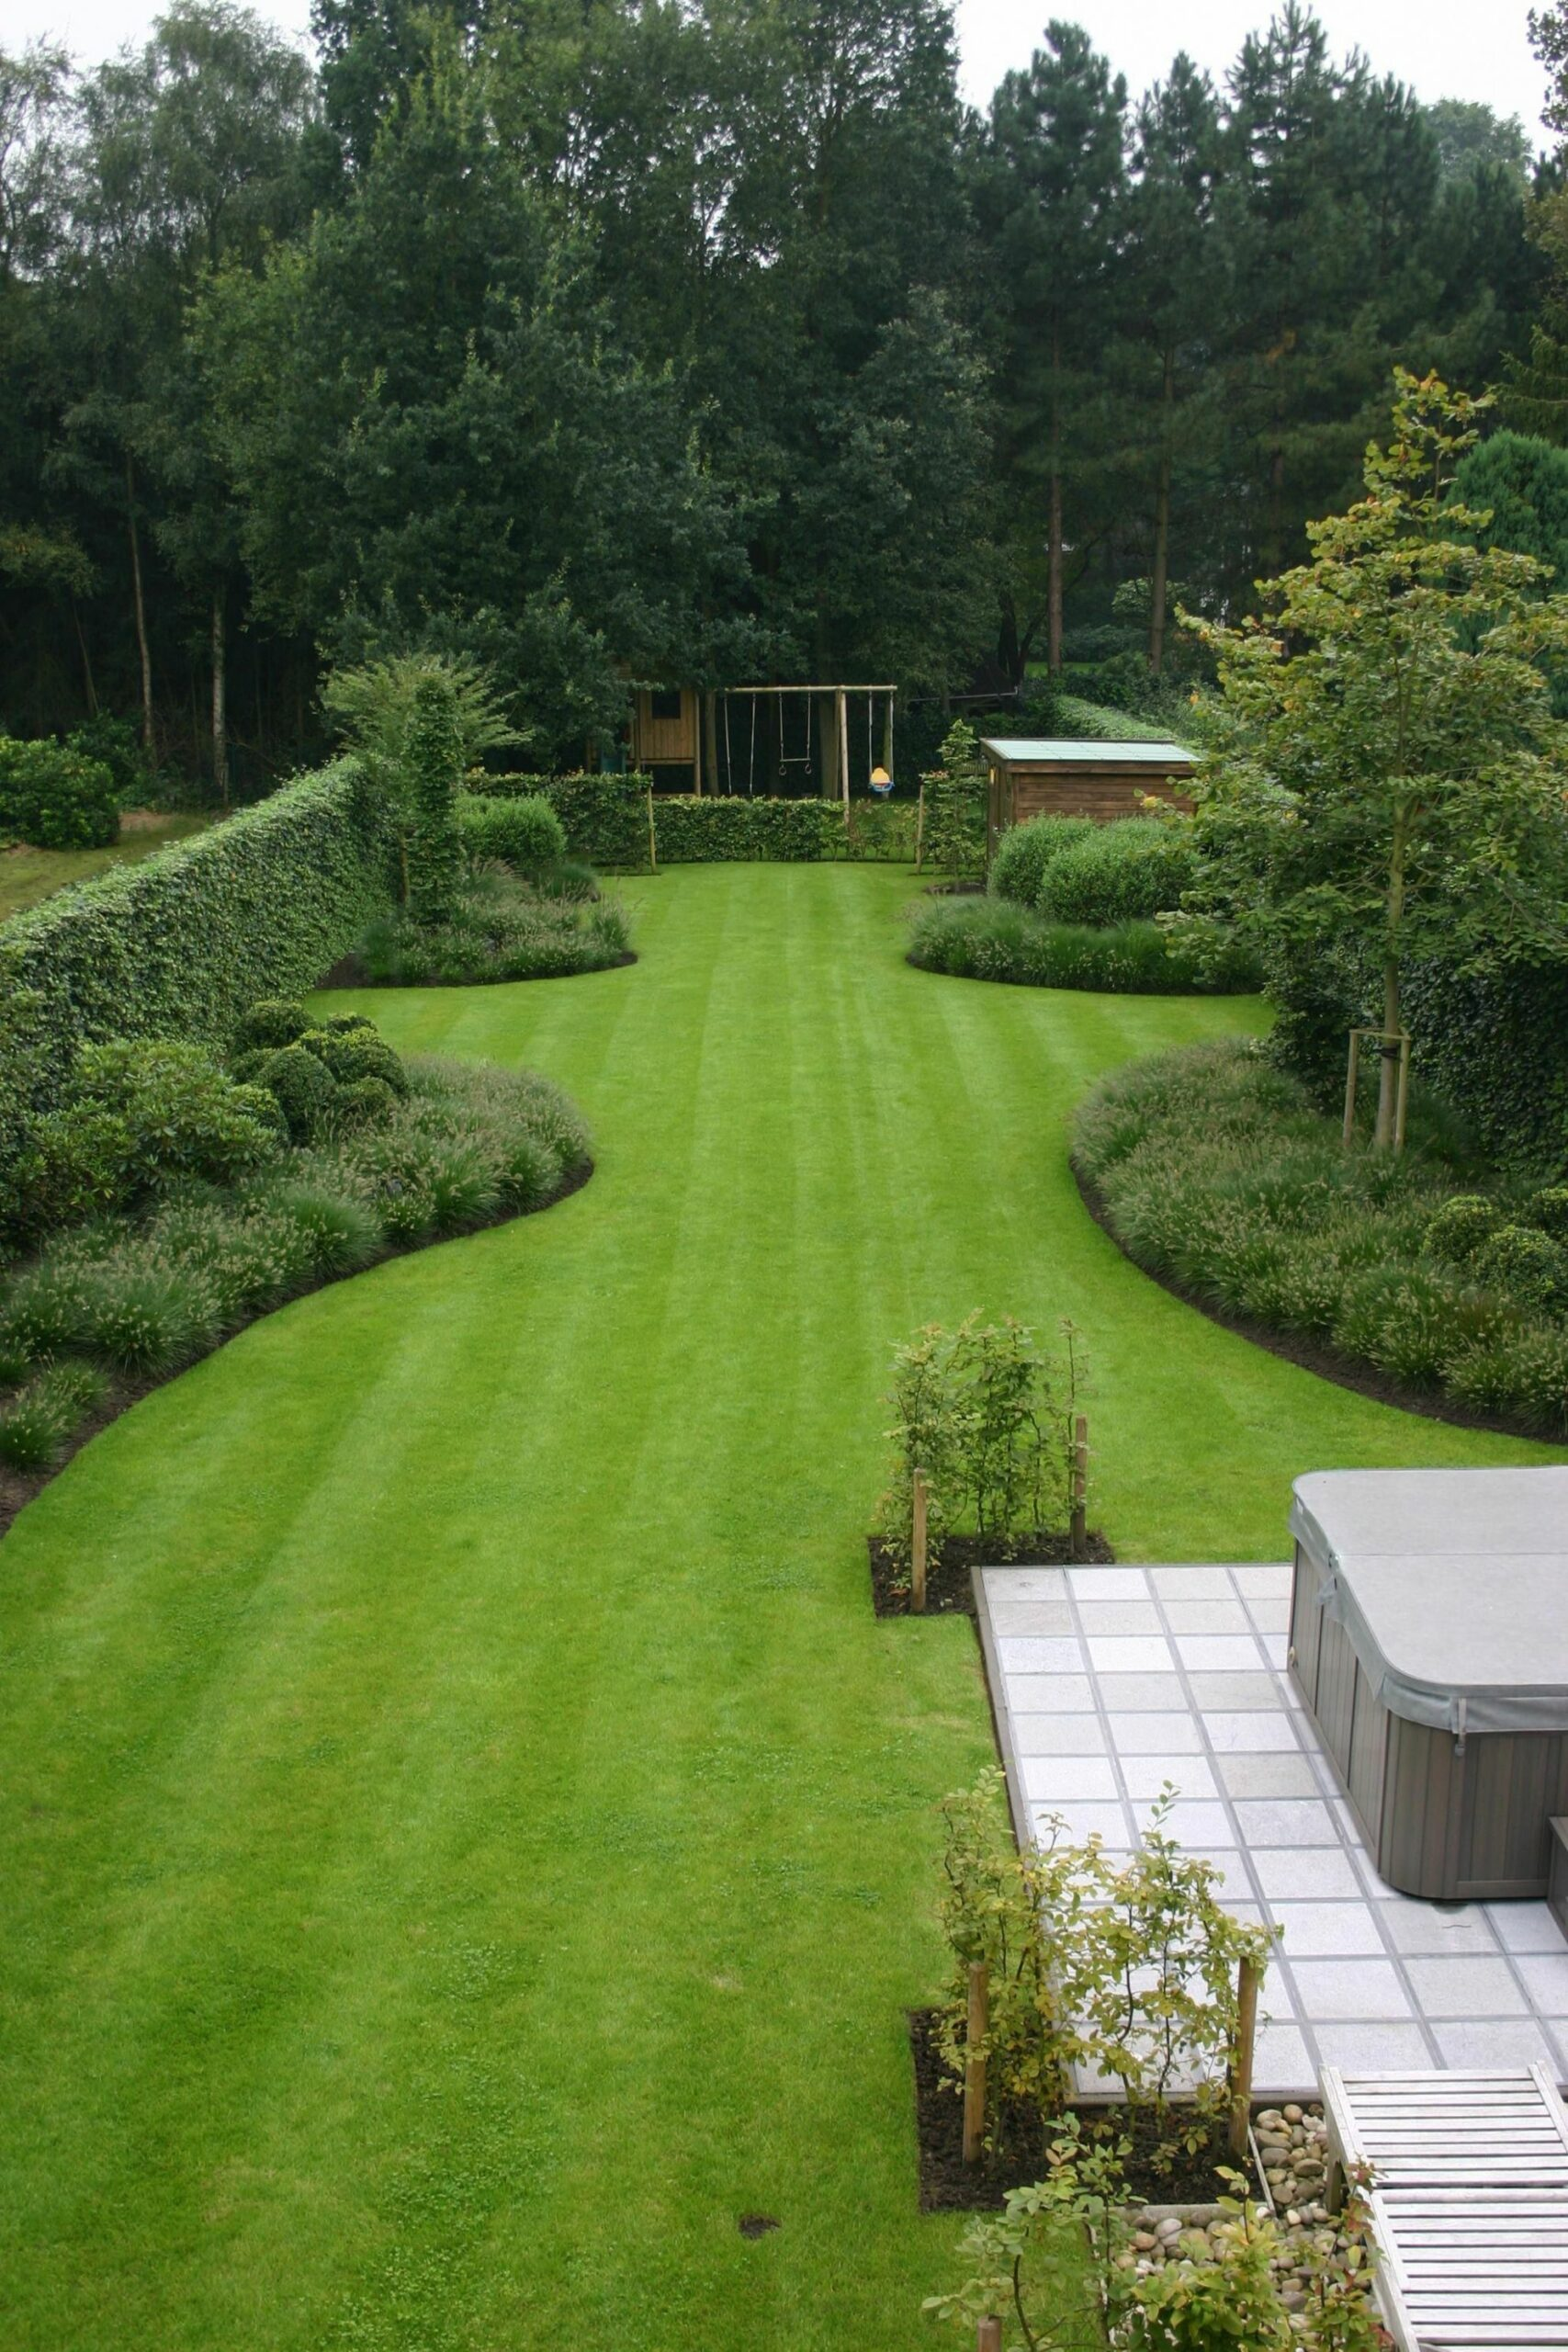 All about backyard landscaping ideas on a budget, small, layout ..